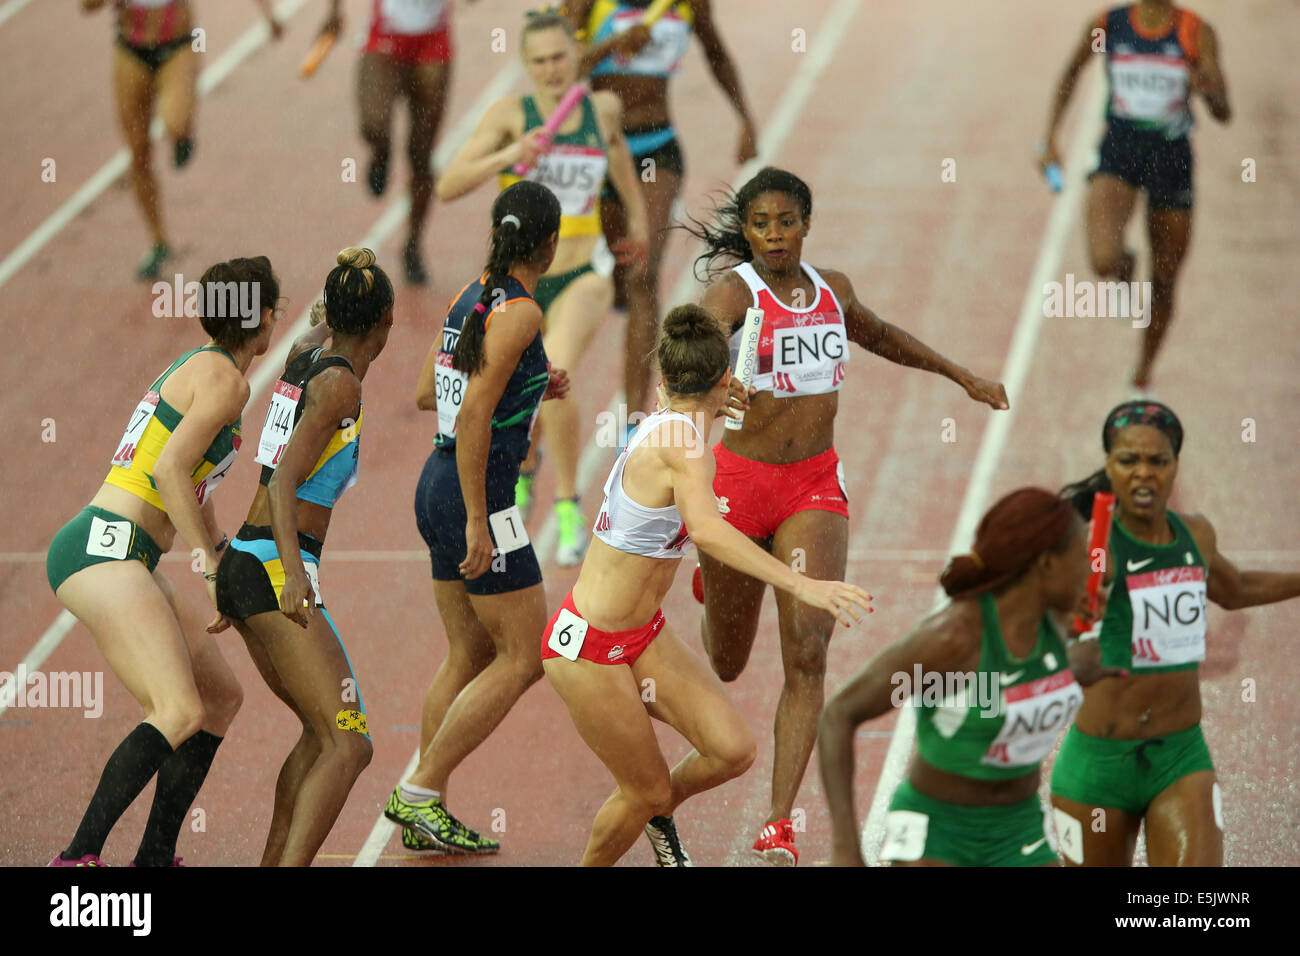 Hampden Park Glasgow 2 August 2014. Commonwealth Games day 10 Athletics.   Women's 4x400m relay final. 1st  - Stock Image